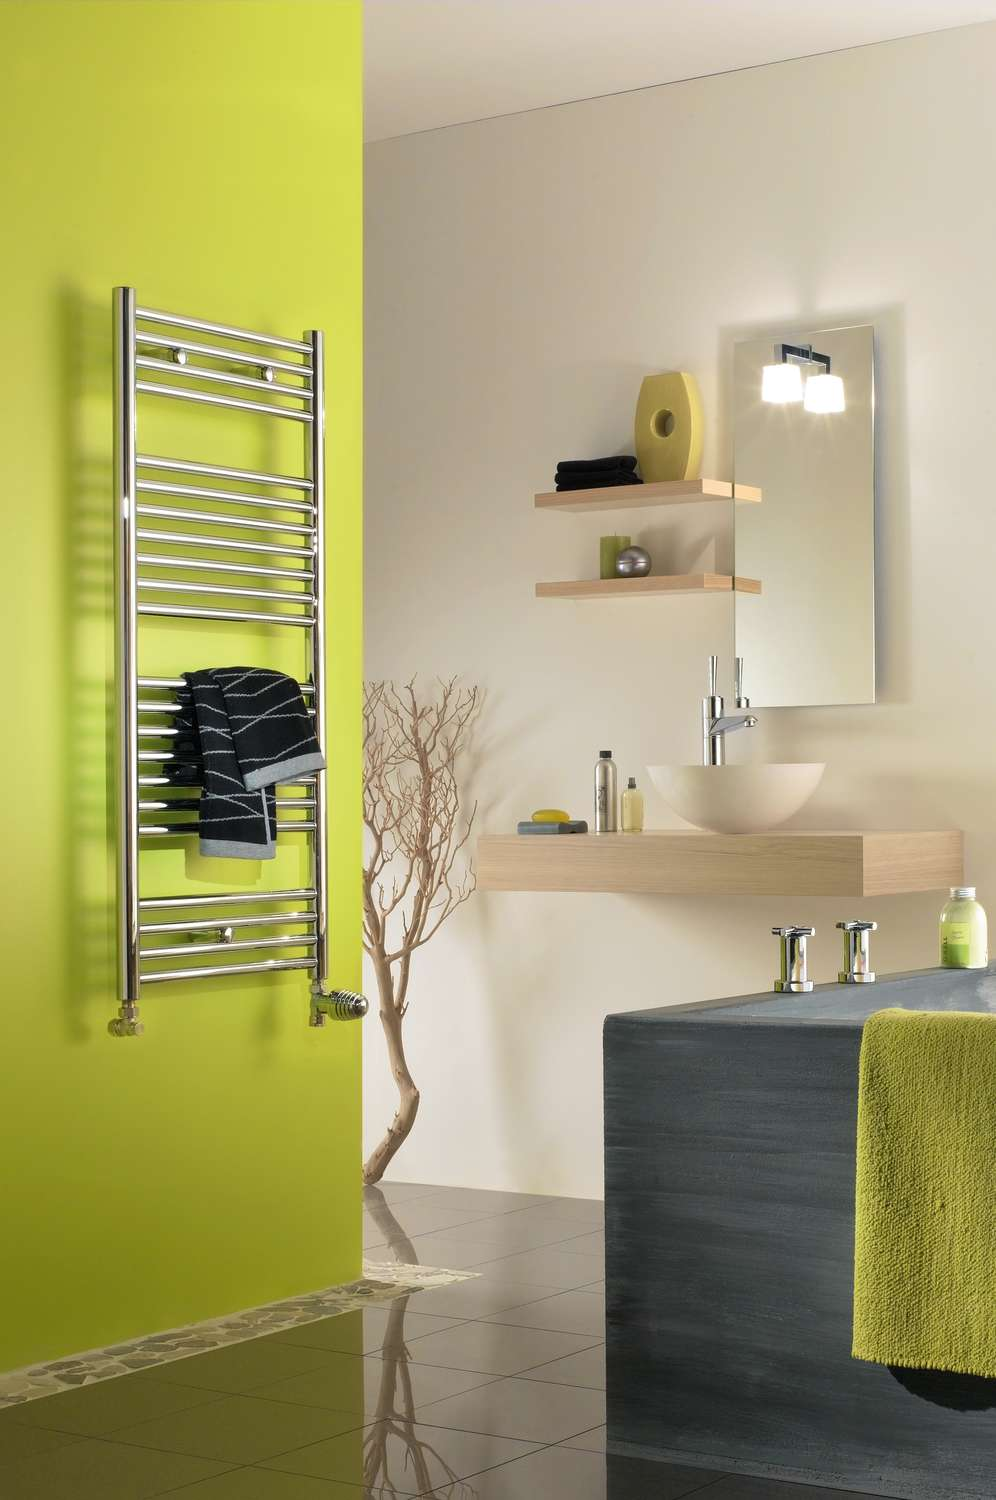 atoll spa chrom chauffage central slo radiateur seche. Black Bedroom Furniture Sets. Home Design Ideas